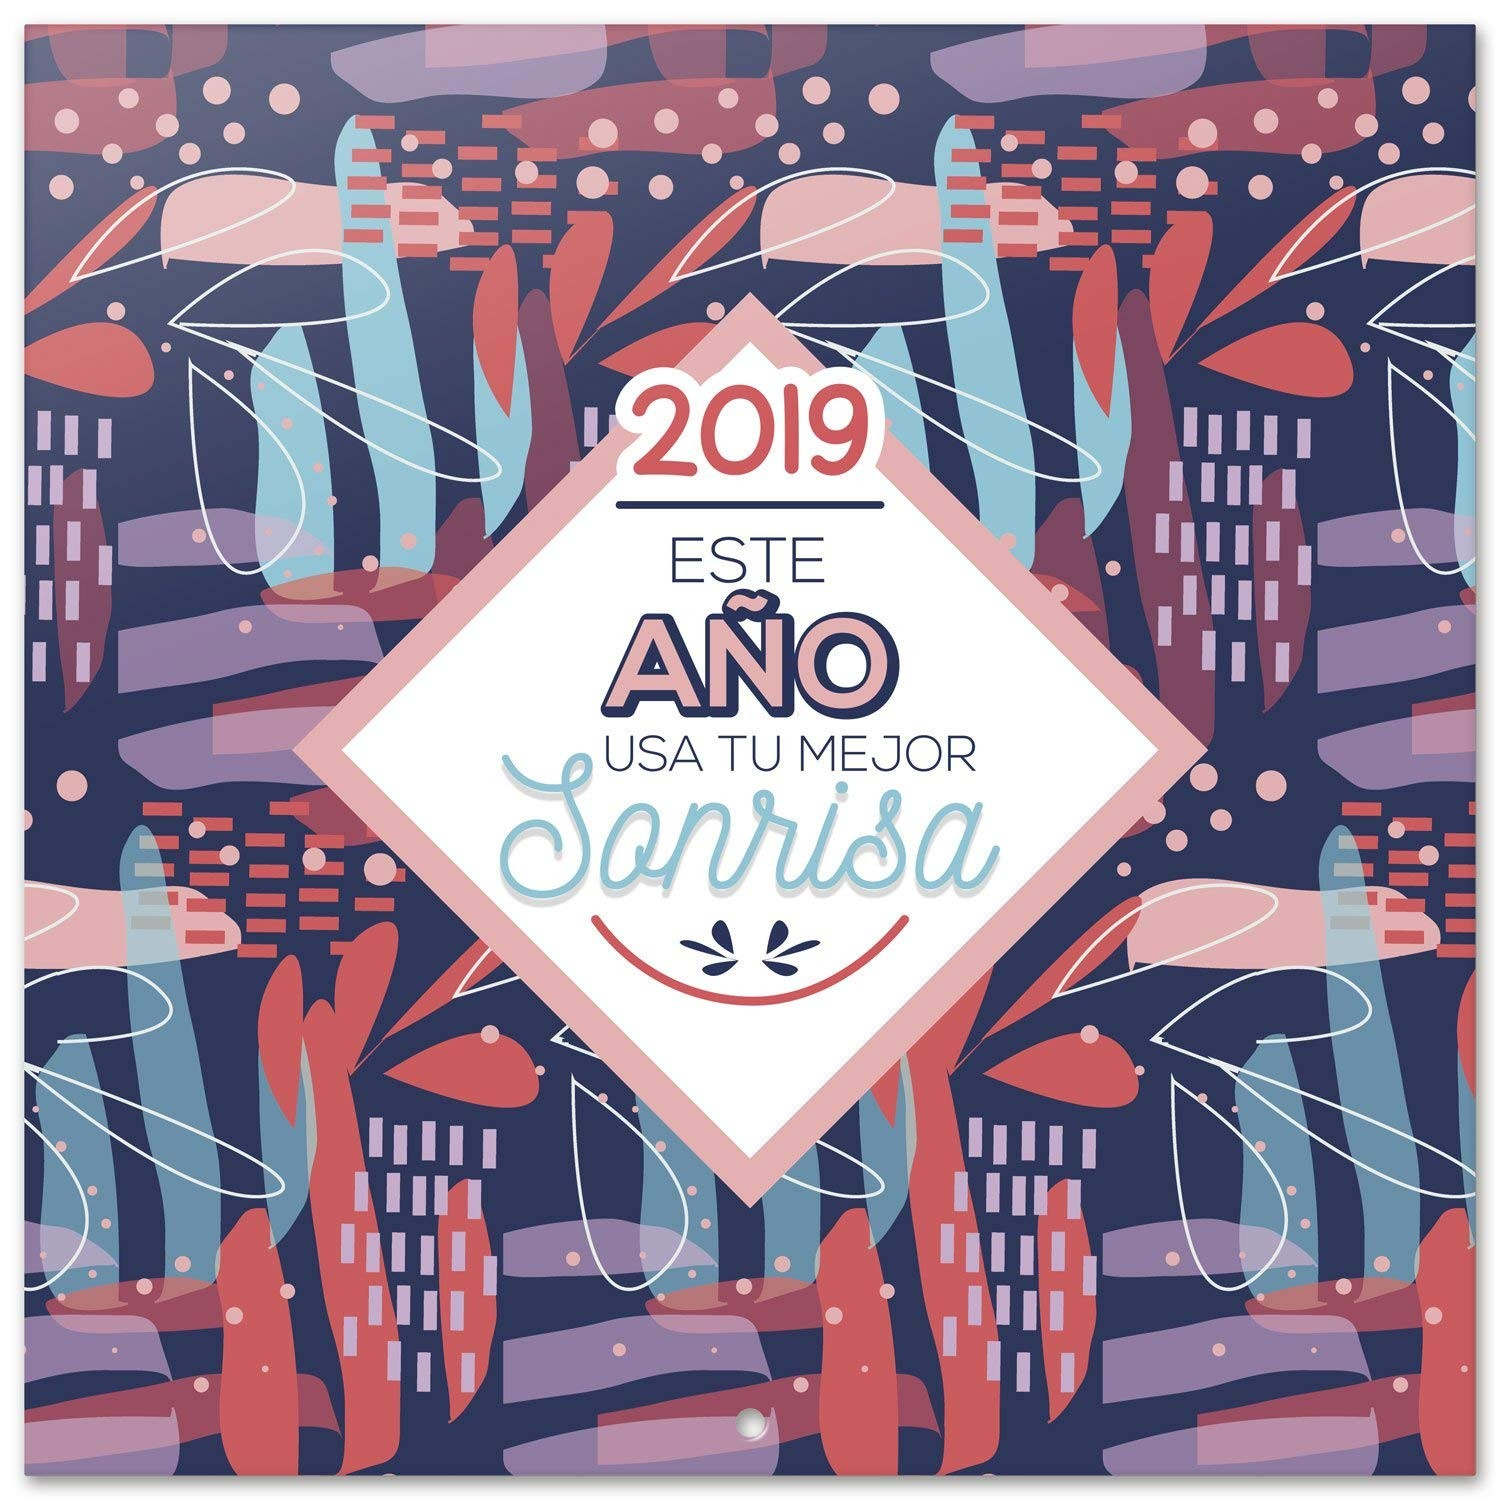 Calendario 2018 Y 2019 Mexico Sep Más Caliente Grupo Erik Editores Amelie Calendario 2019 30 X 30 Cm Amazon Of Calendario 2018 Y 2019 Mexico Sep Más Populares El Incre­ble Calendario 2018 De Alonso 25 Carreras Entre F1 Y Wec